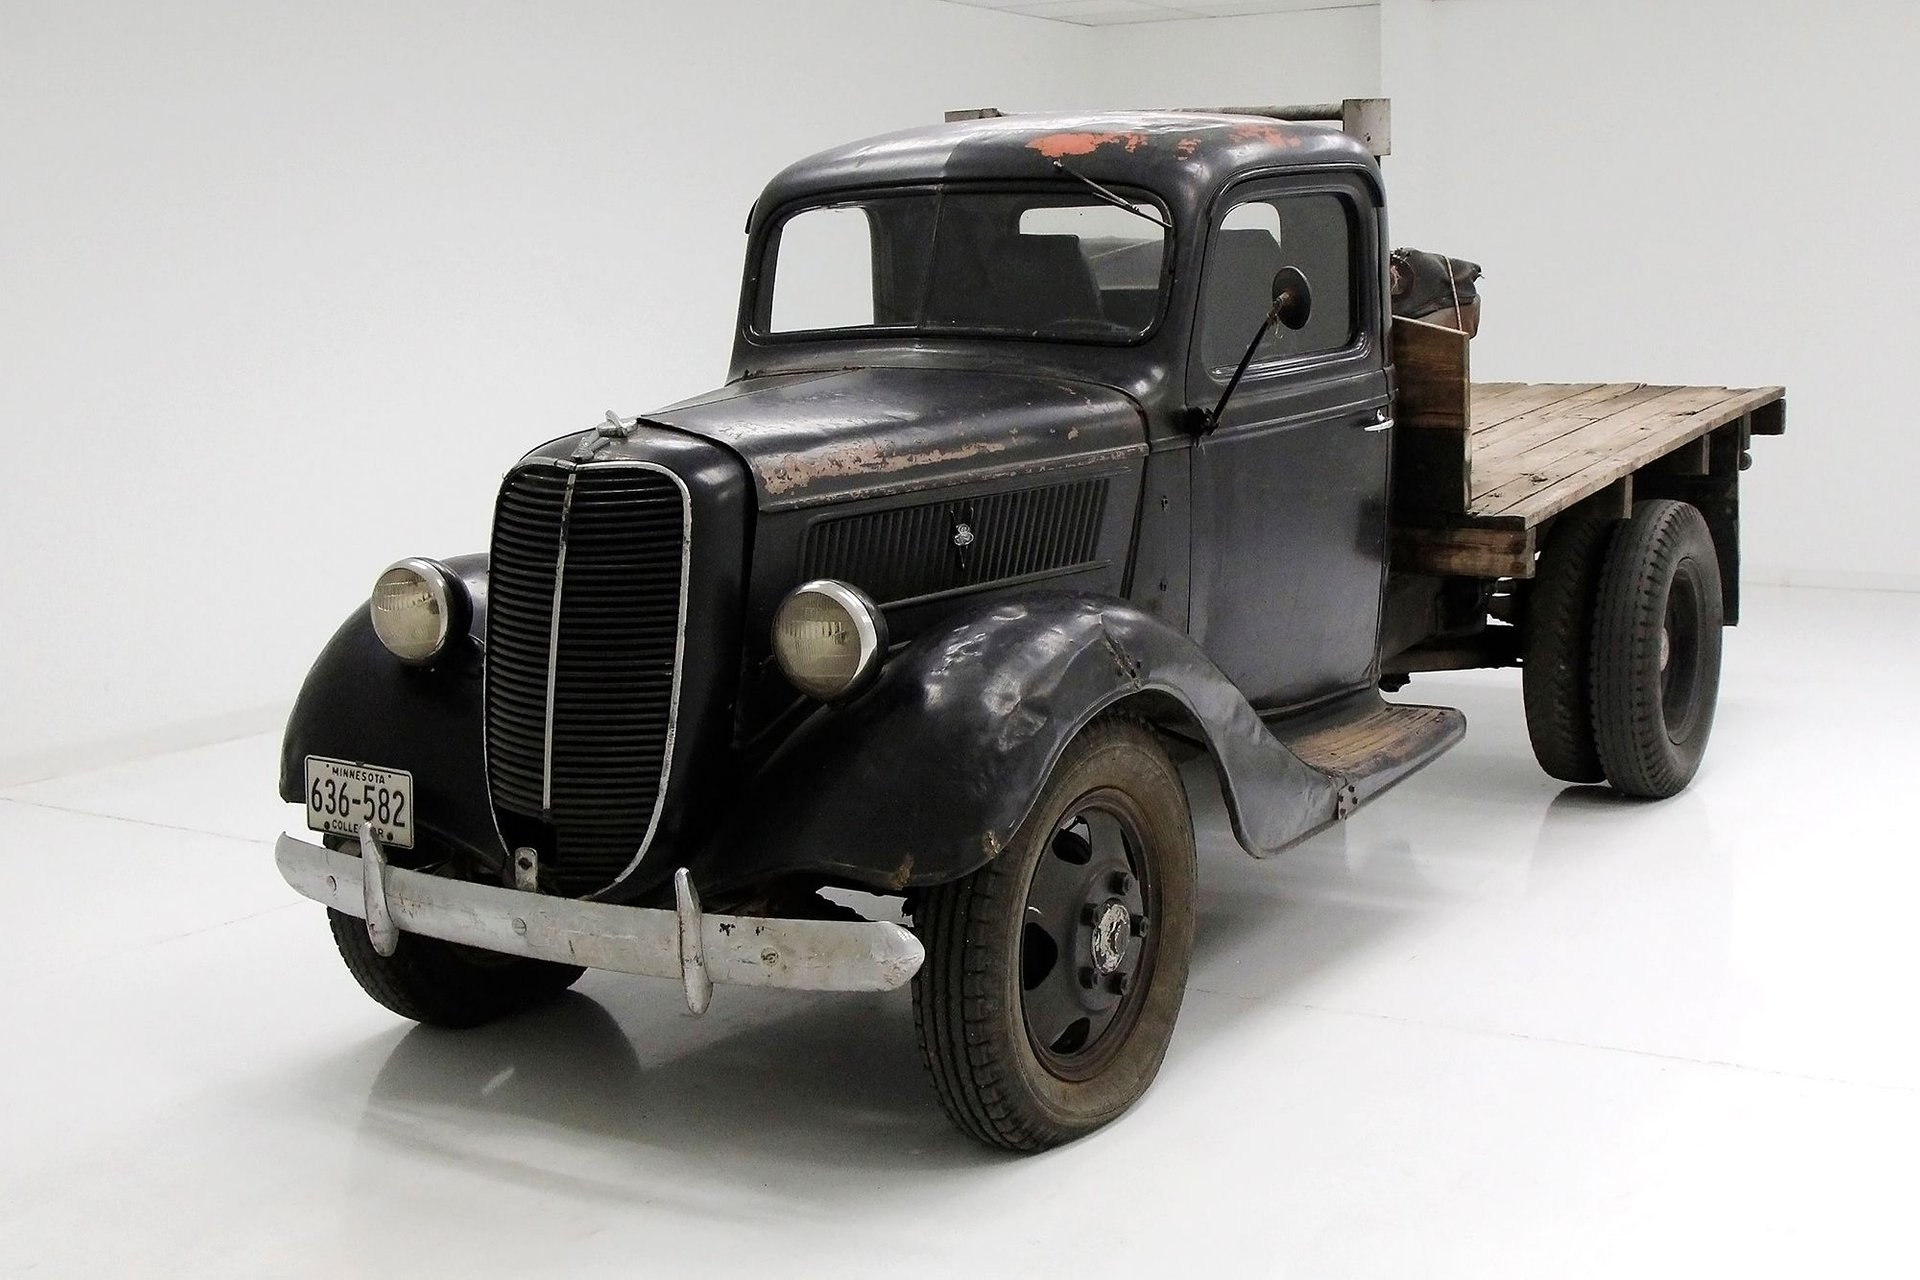 1937 Ford 1 1/2 Ton Flatbed Truck